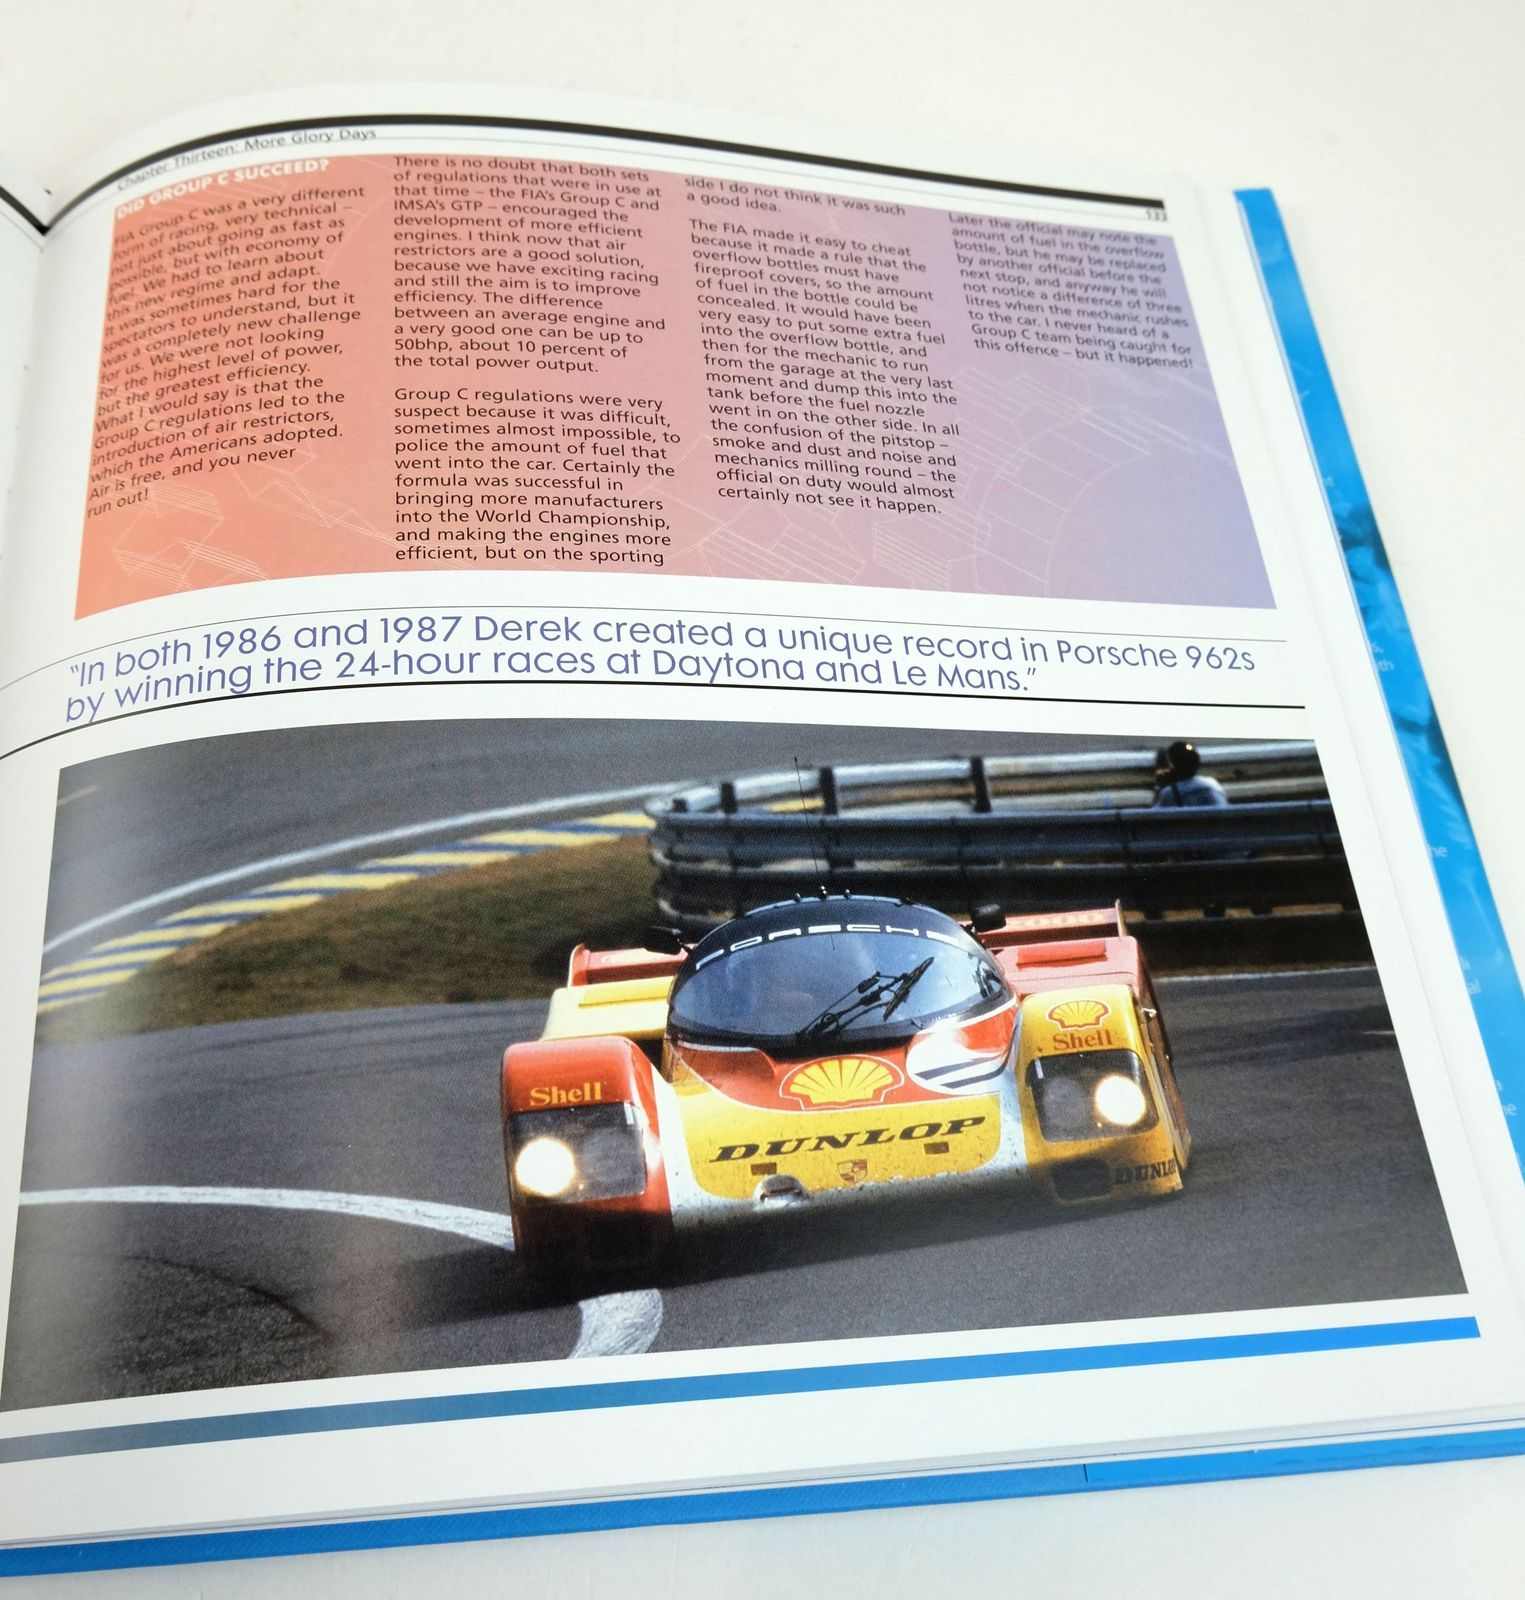 Photo of 24:16: LE MANS 24 HOURS, 16 WINS WITH PORSCHE written by Singer, Norbert Cotton, Michael published by Coterie Press Limited (STOCK CODE: 1819400)  for sale by Stella & Rose's Books